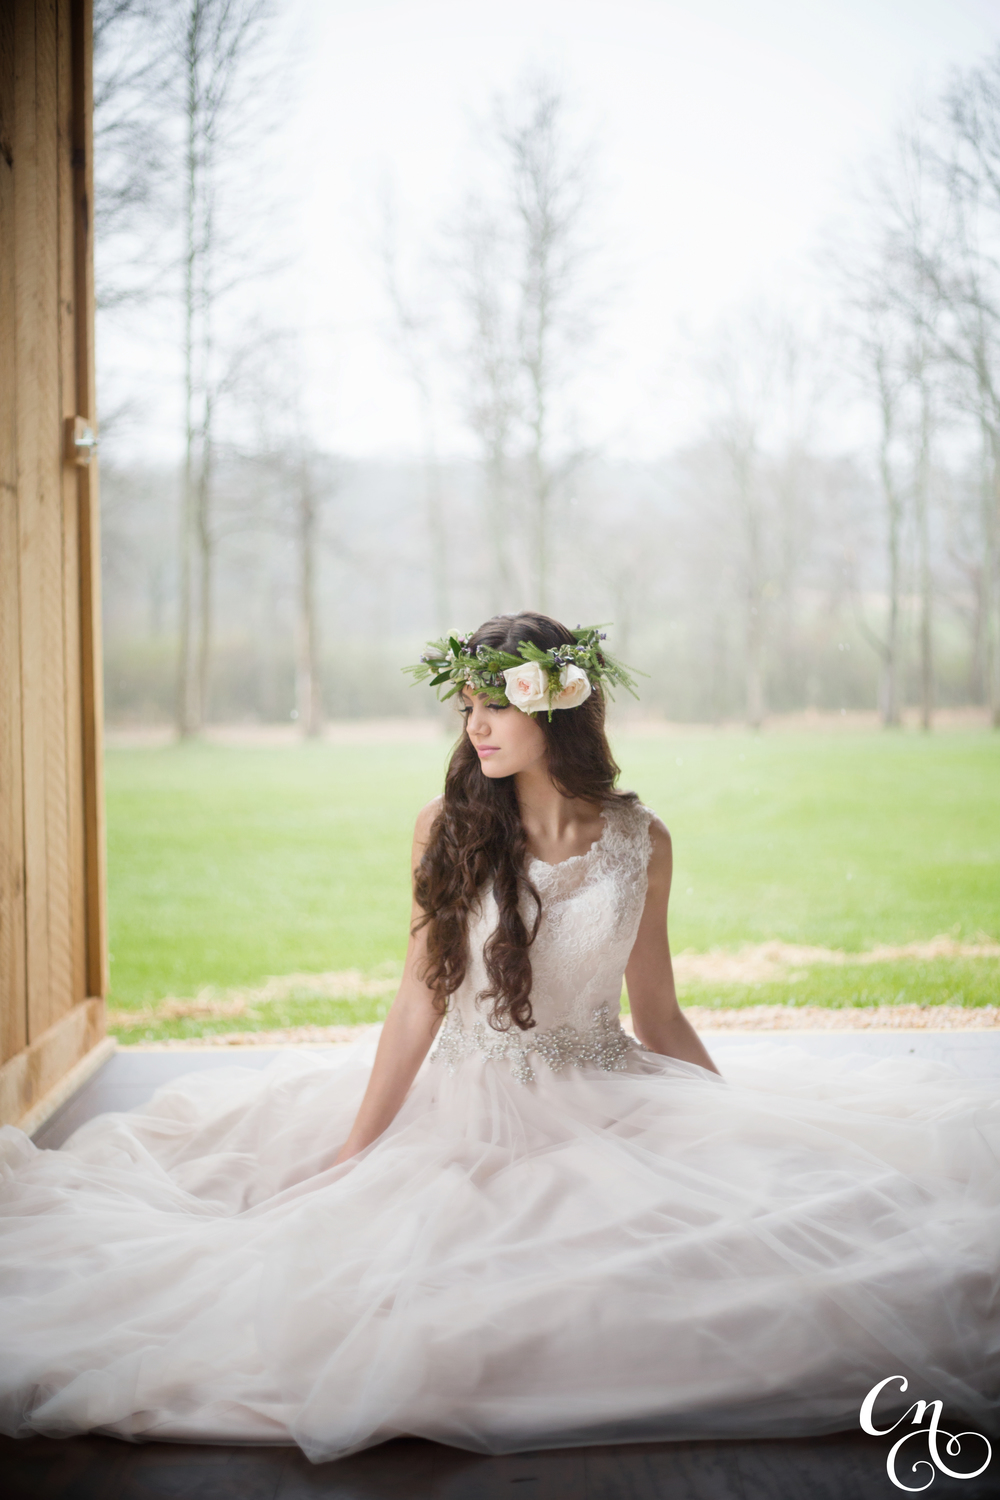 CNP Styled Shoot_5046wm.jpg